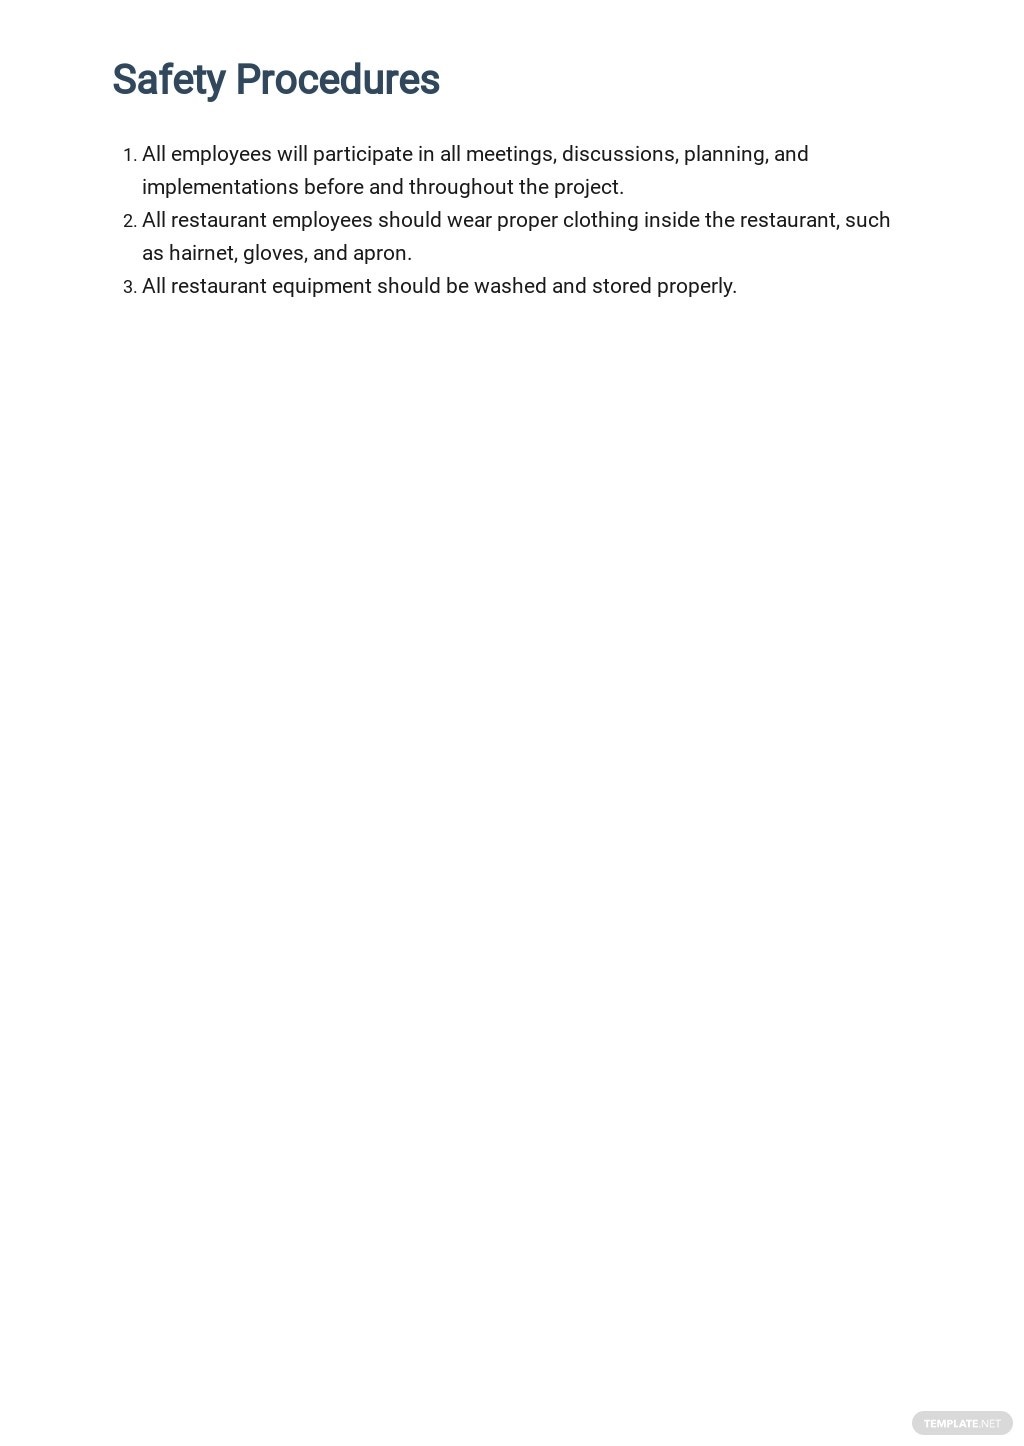 Free Health and Safety Manual Template 4.jpe